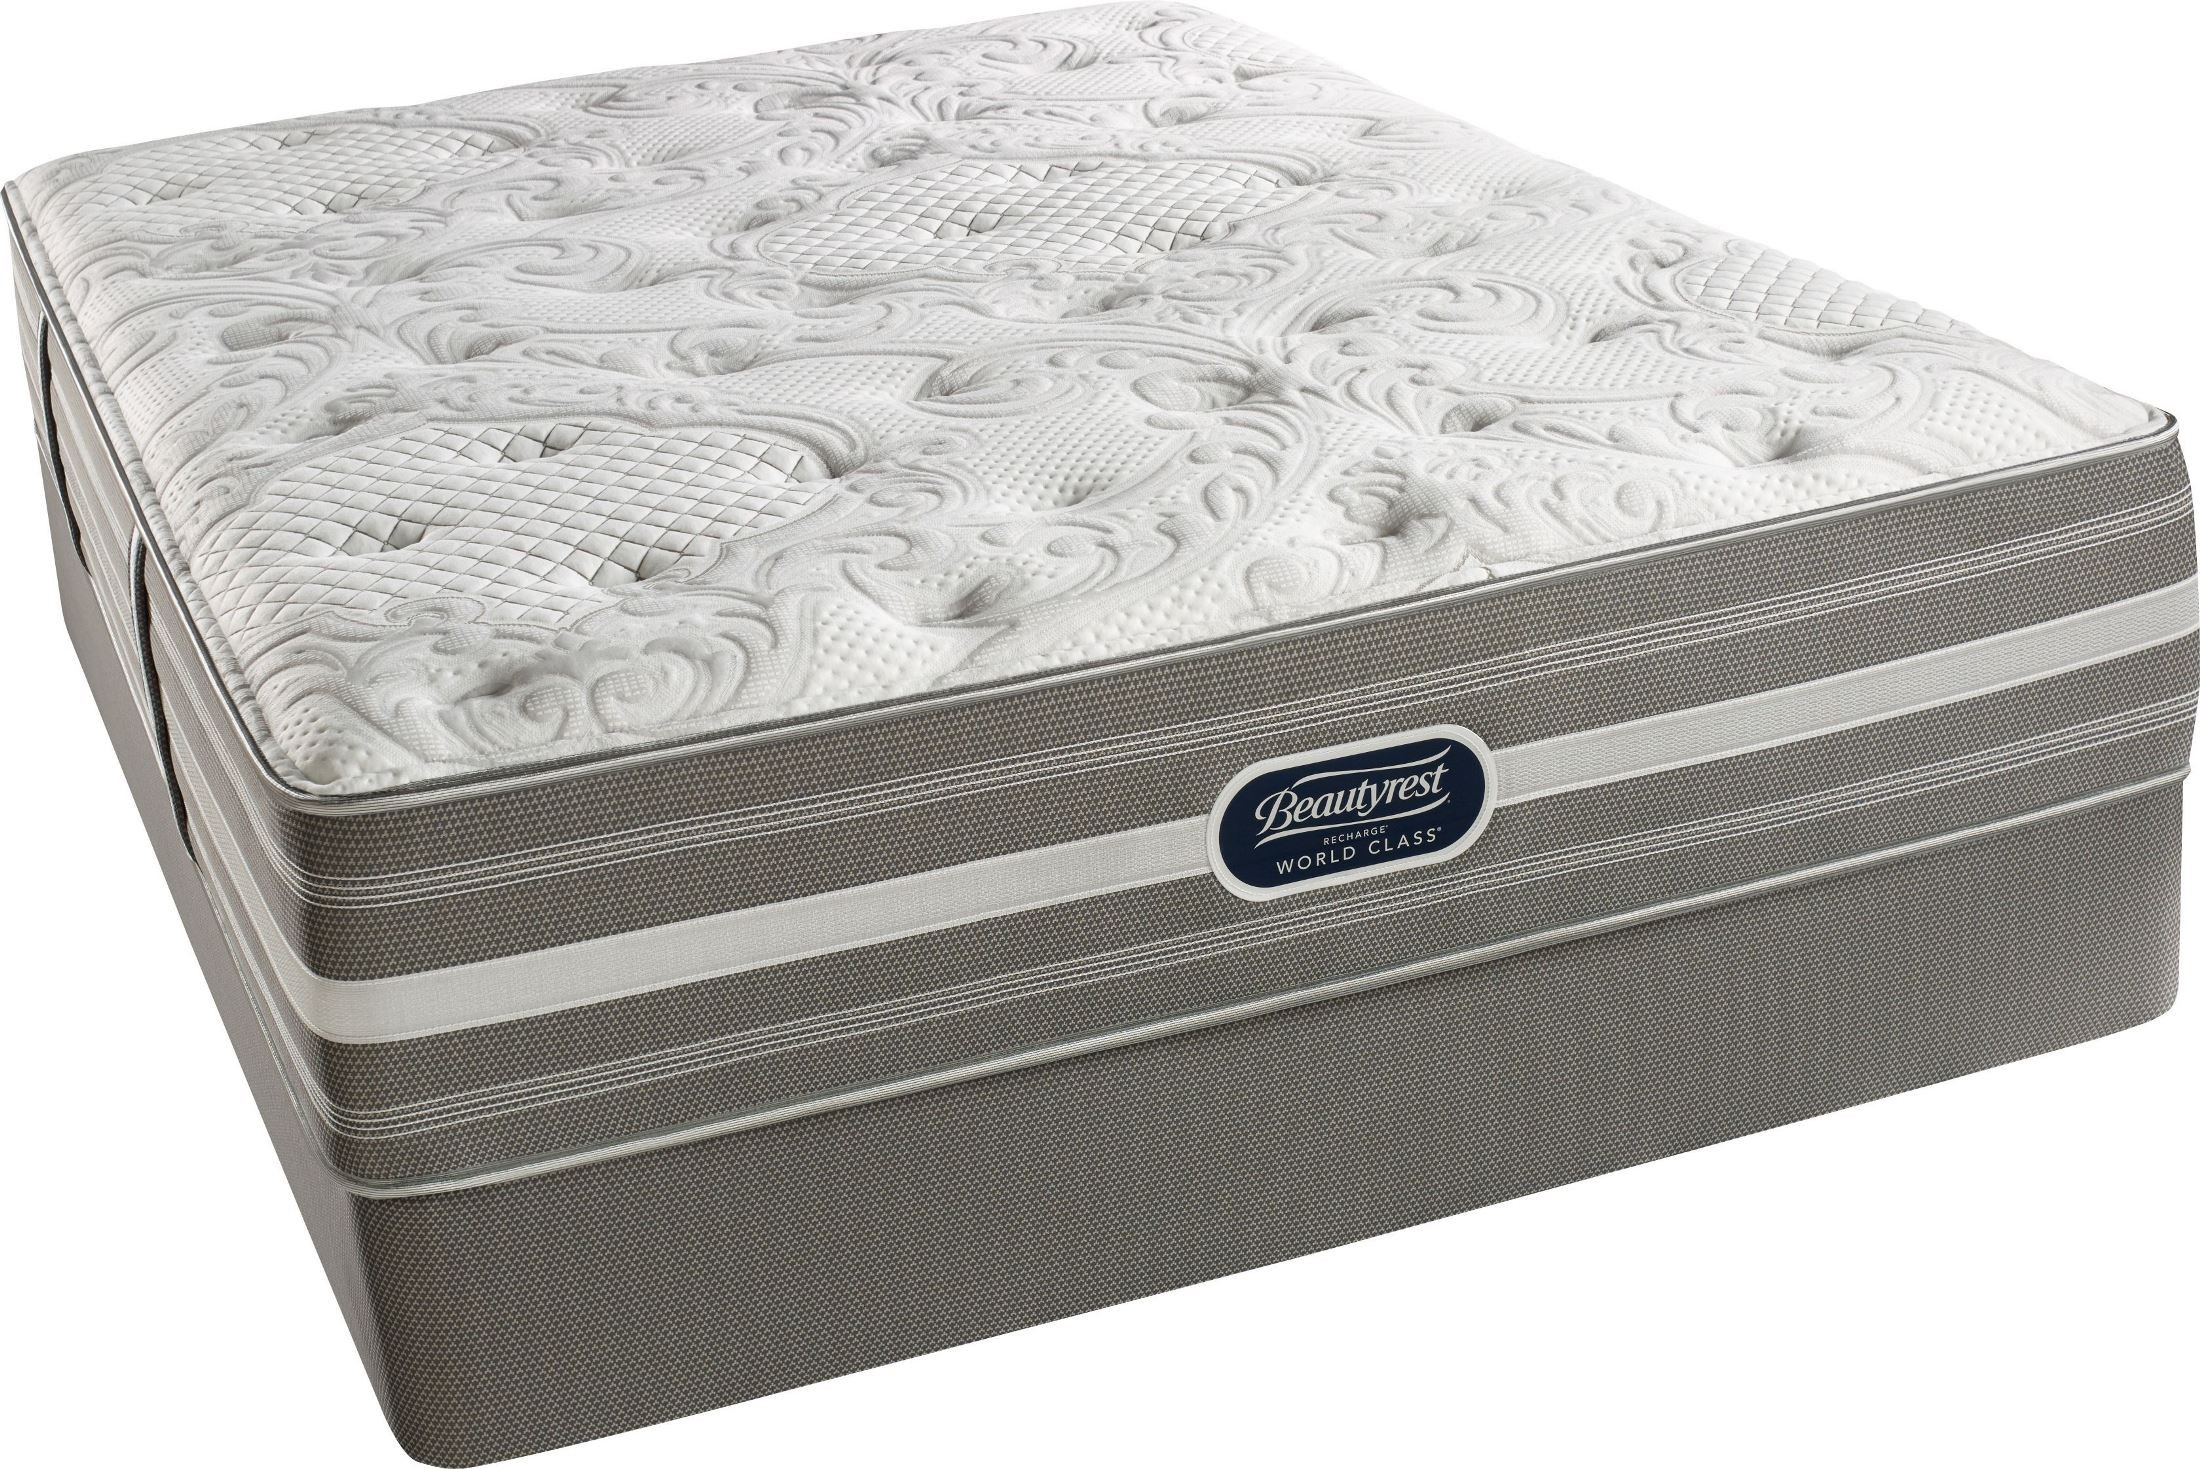 Recharge chasewood cal king pillow top luxury firm mattress with foundation recharge chasewood Mattress king